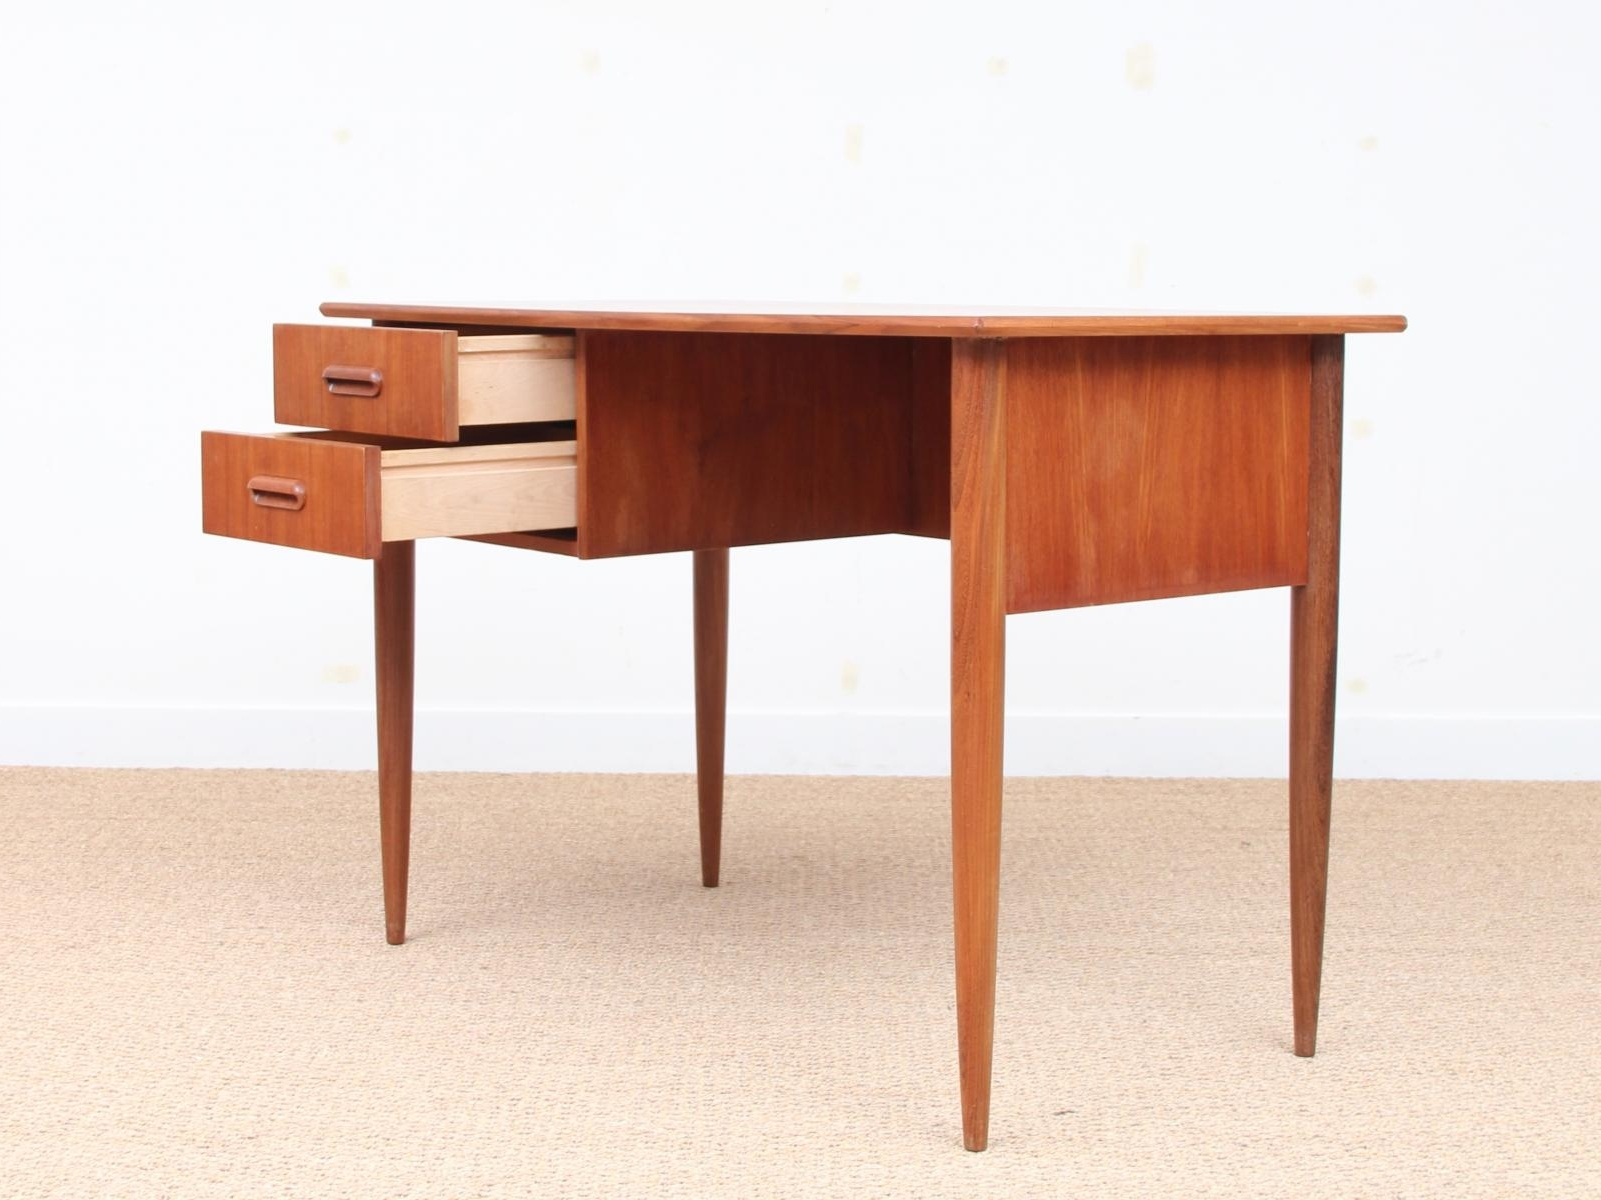 Popular Mid Century Small Desk In Teak, 1950S For Sale At Pamono Pertaining To Teak Computer Desks (View 1 of 20)